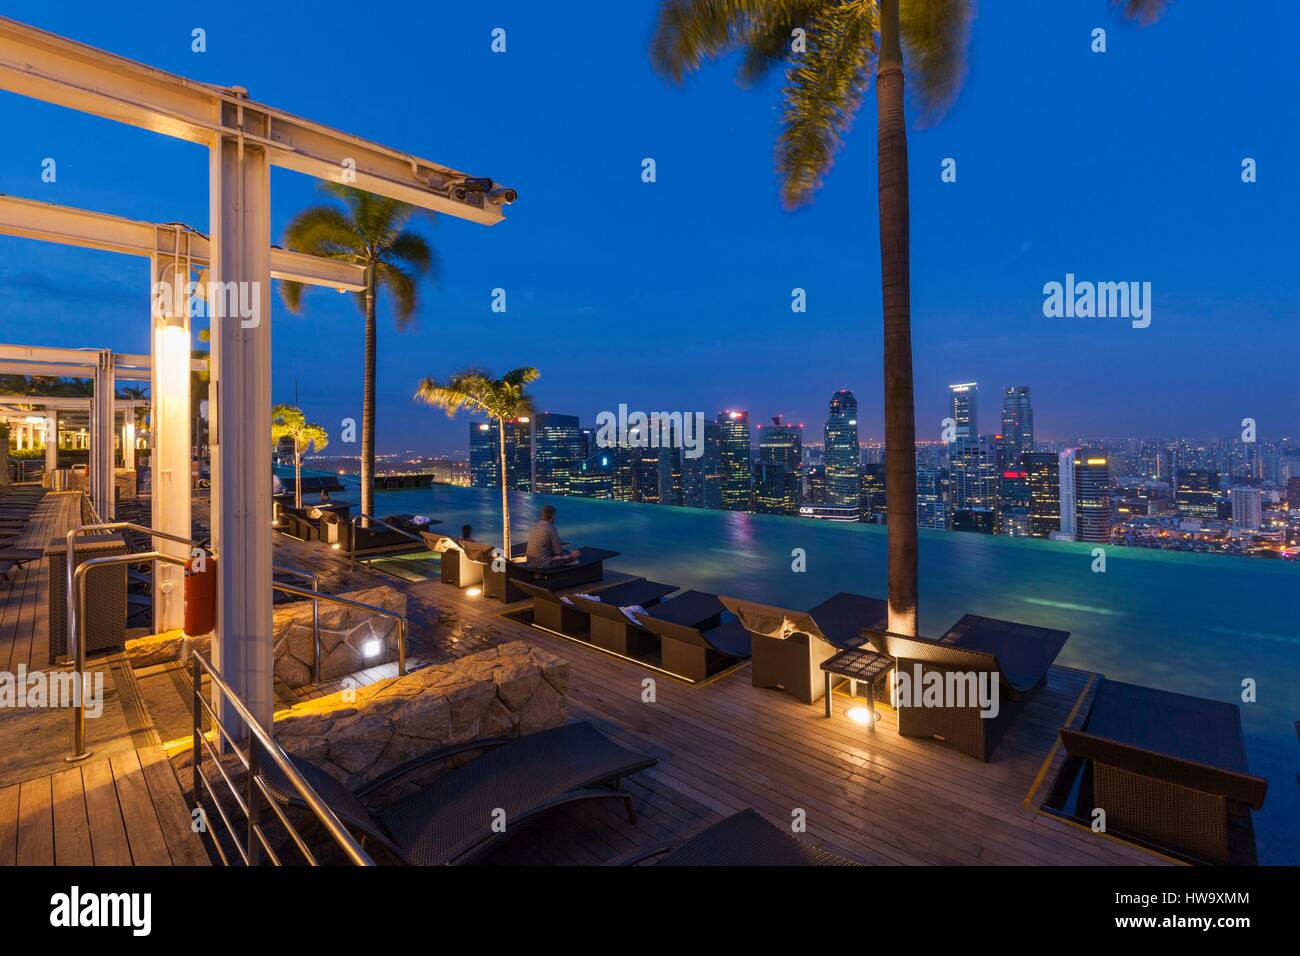 Singapore Marina Bay Sands Hotel Rooftop Swimming Pool Dawn Stock Photo Royalty Free Image